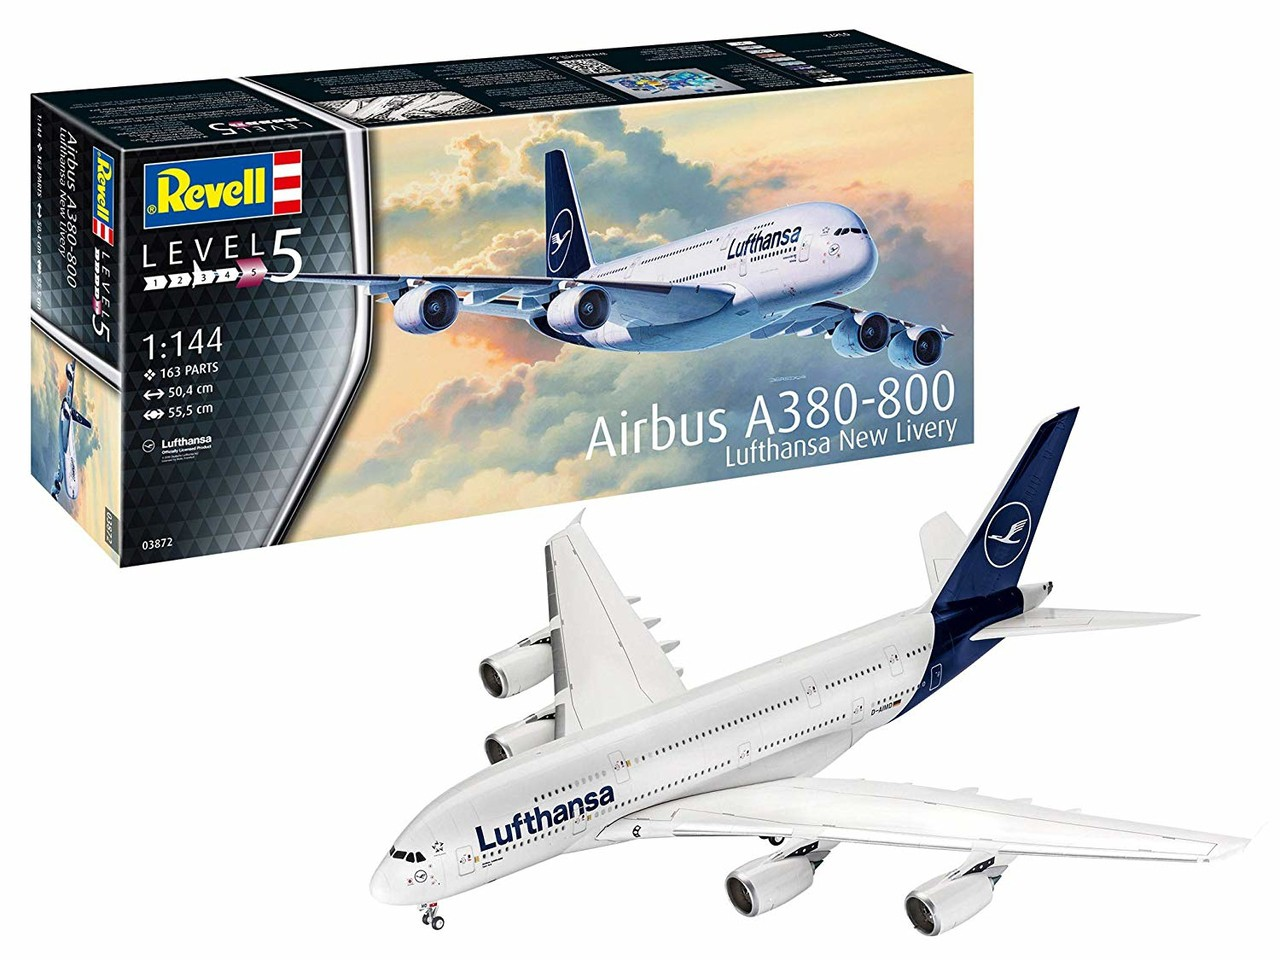 Airbus A380-800 Lufthansa New Liverya New Livery